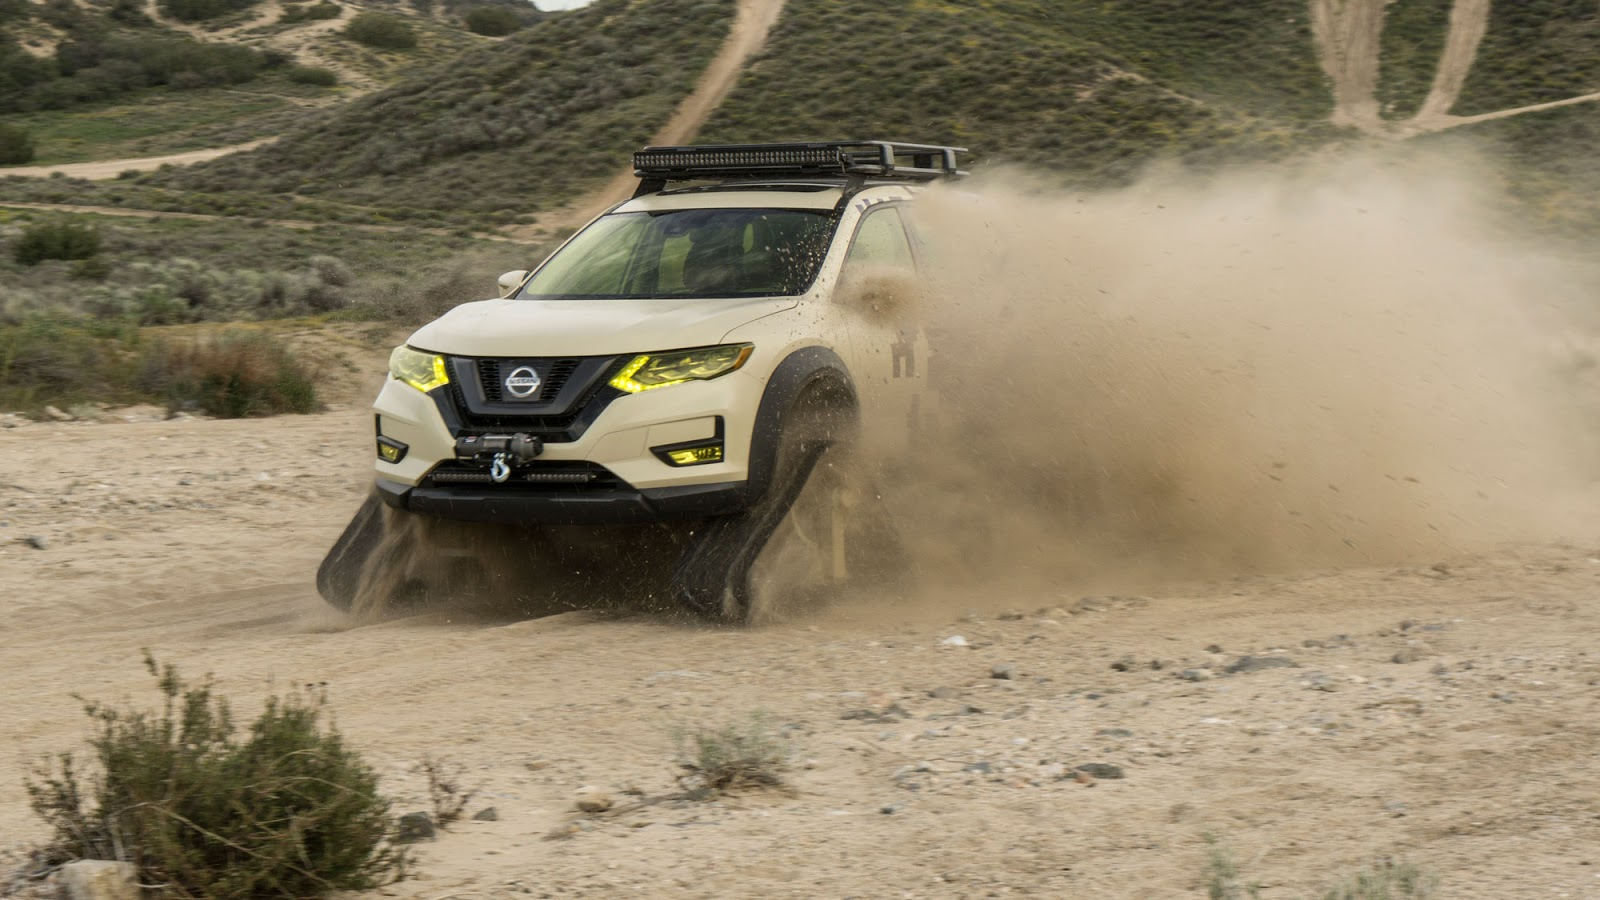 Nissan Rogue Trail Warrior Project 17 rs Nissan Rogue Trail Warrior Project : Το X-trail του... Ράμπο Fun, Nissan, Nissan Rogue, Nissan Rogue Trail Warrior Project, Nissan X-trail, Prototype, SUV